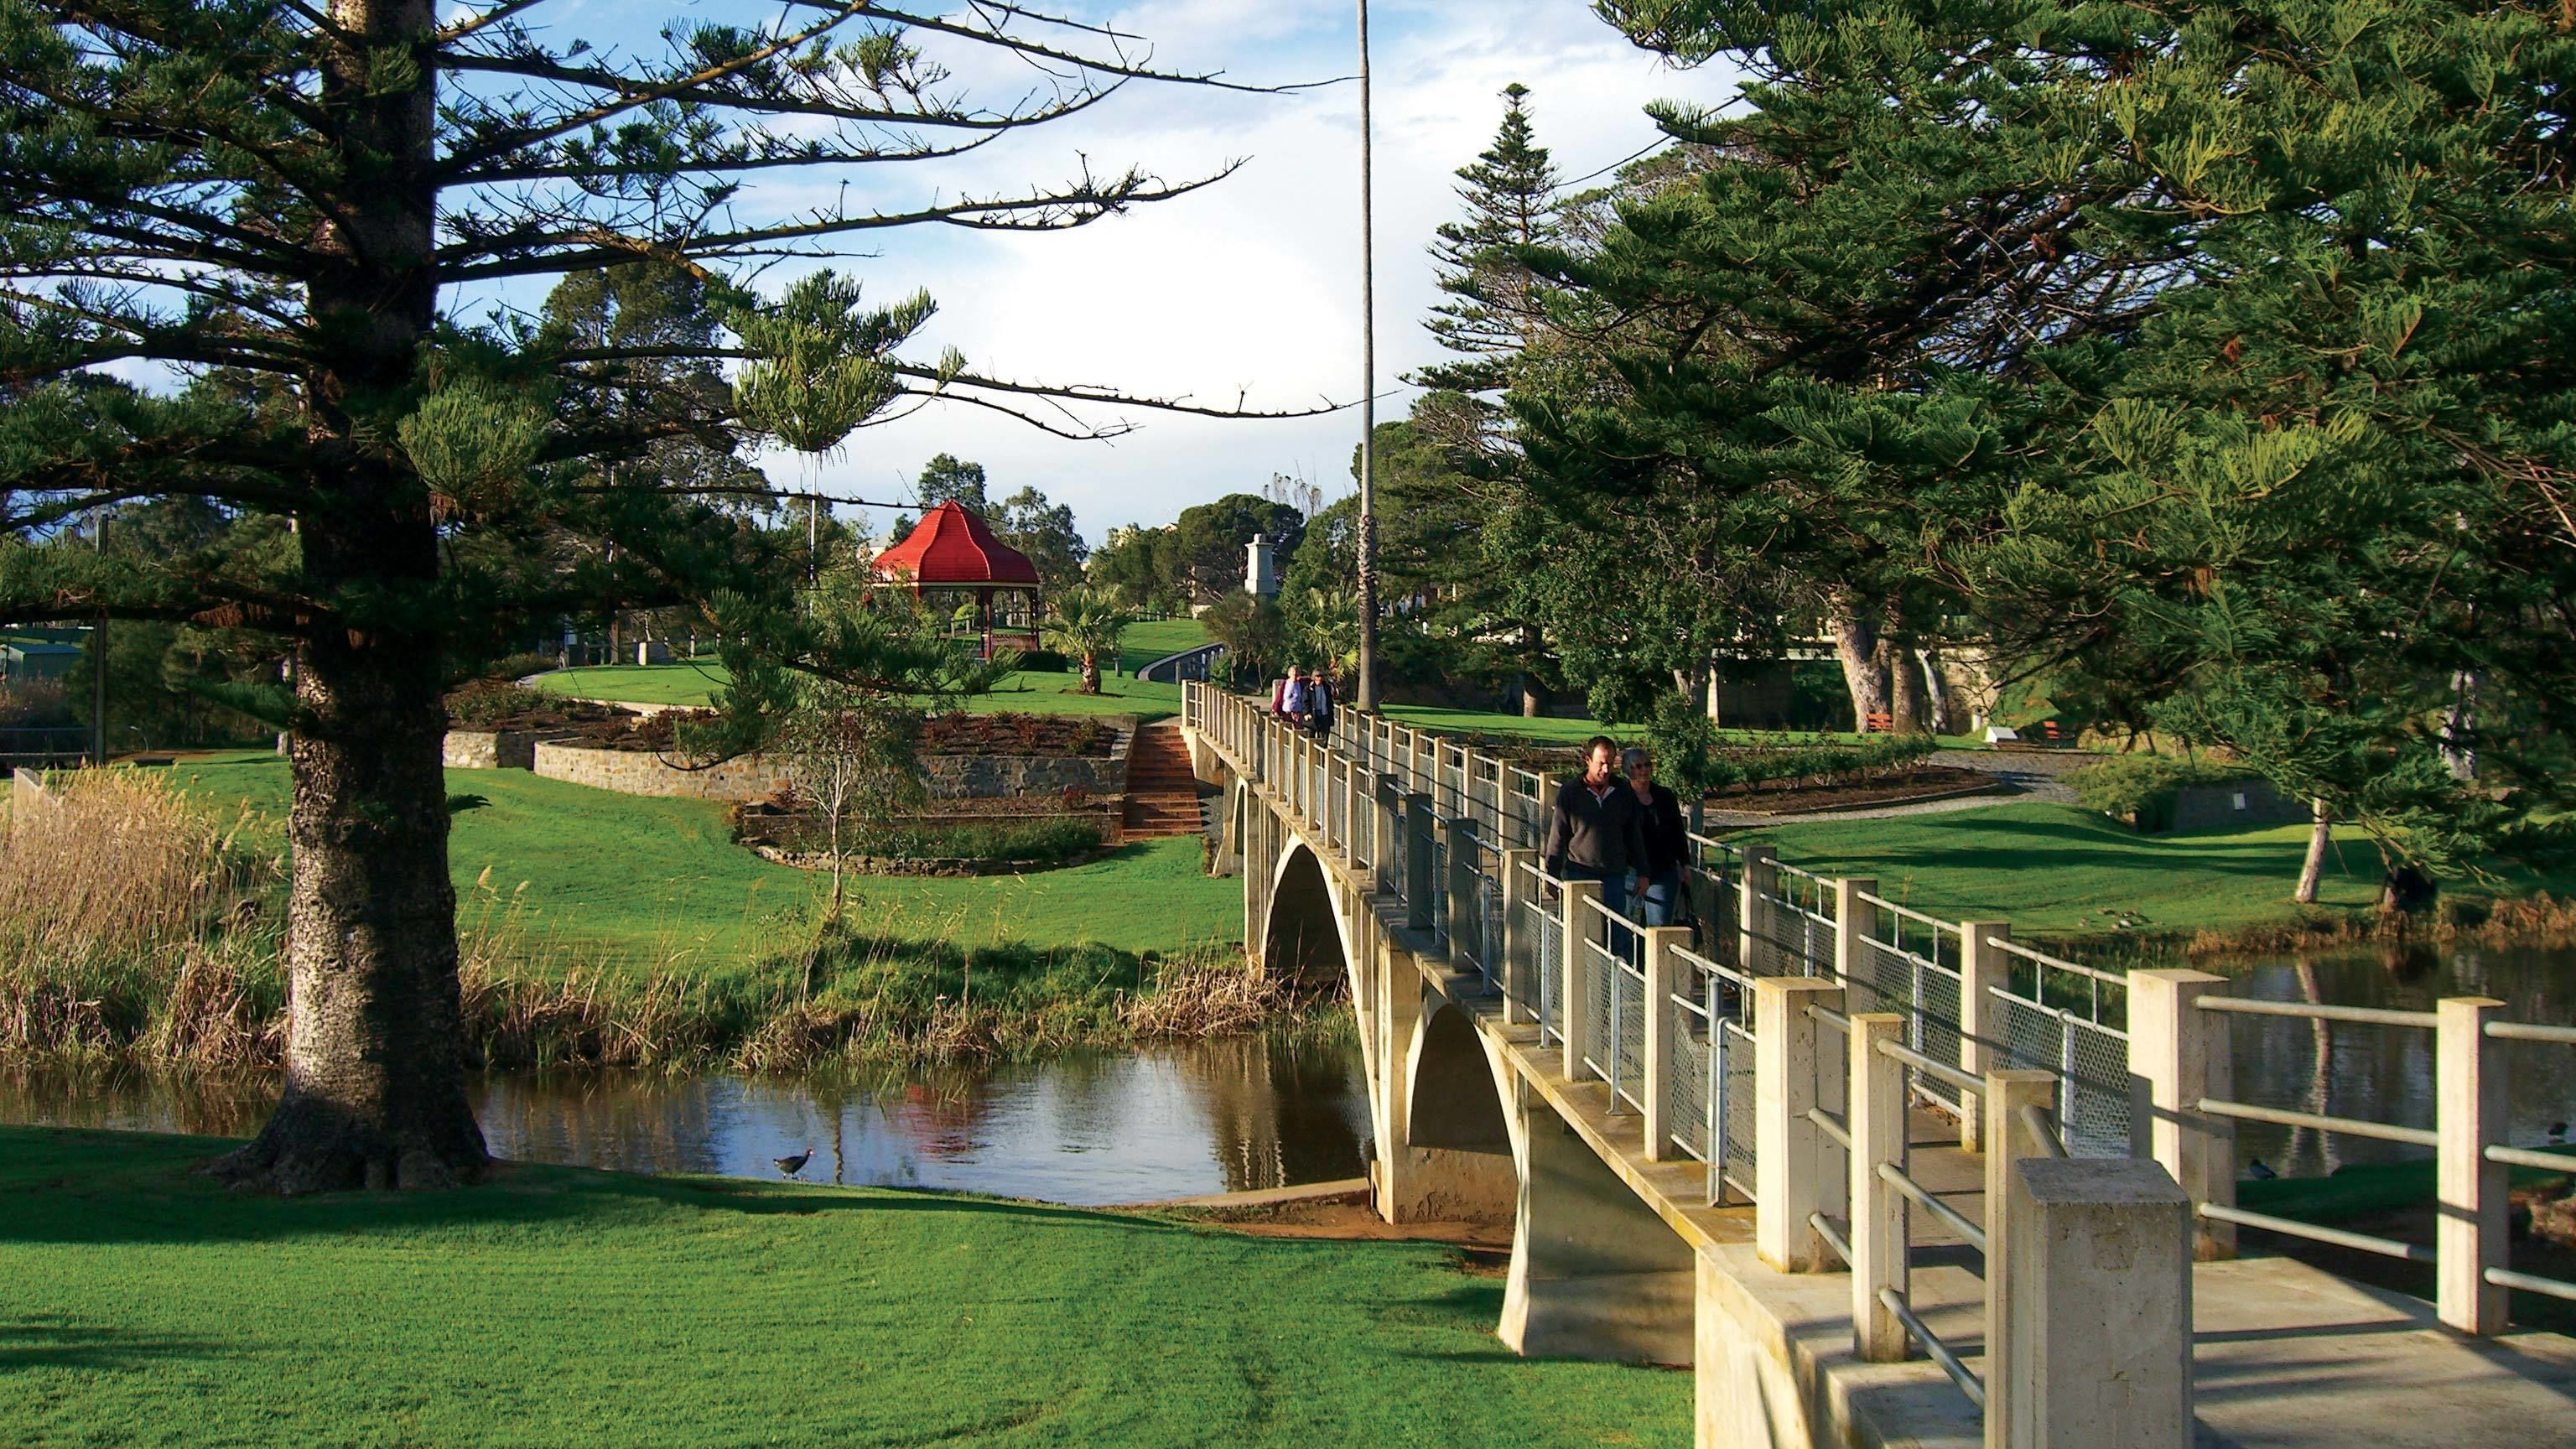 A bridge and gazebo at a park in Victor Harbor